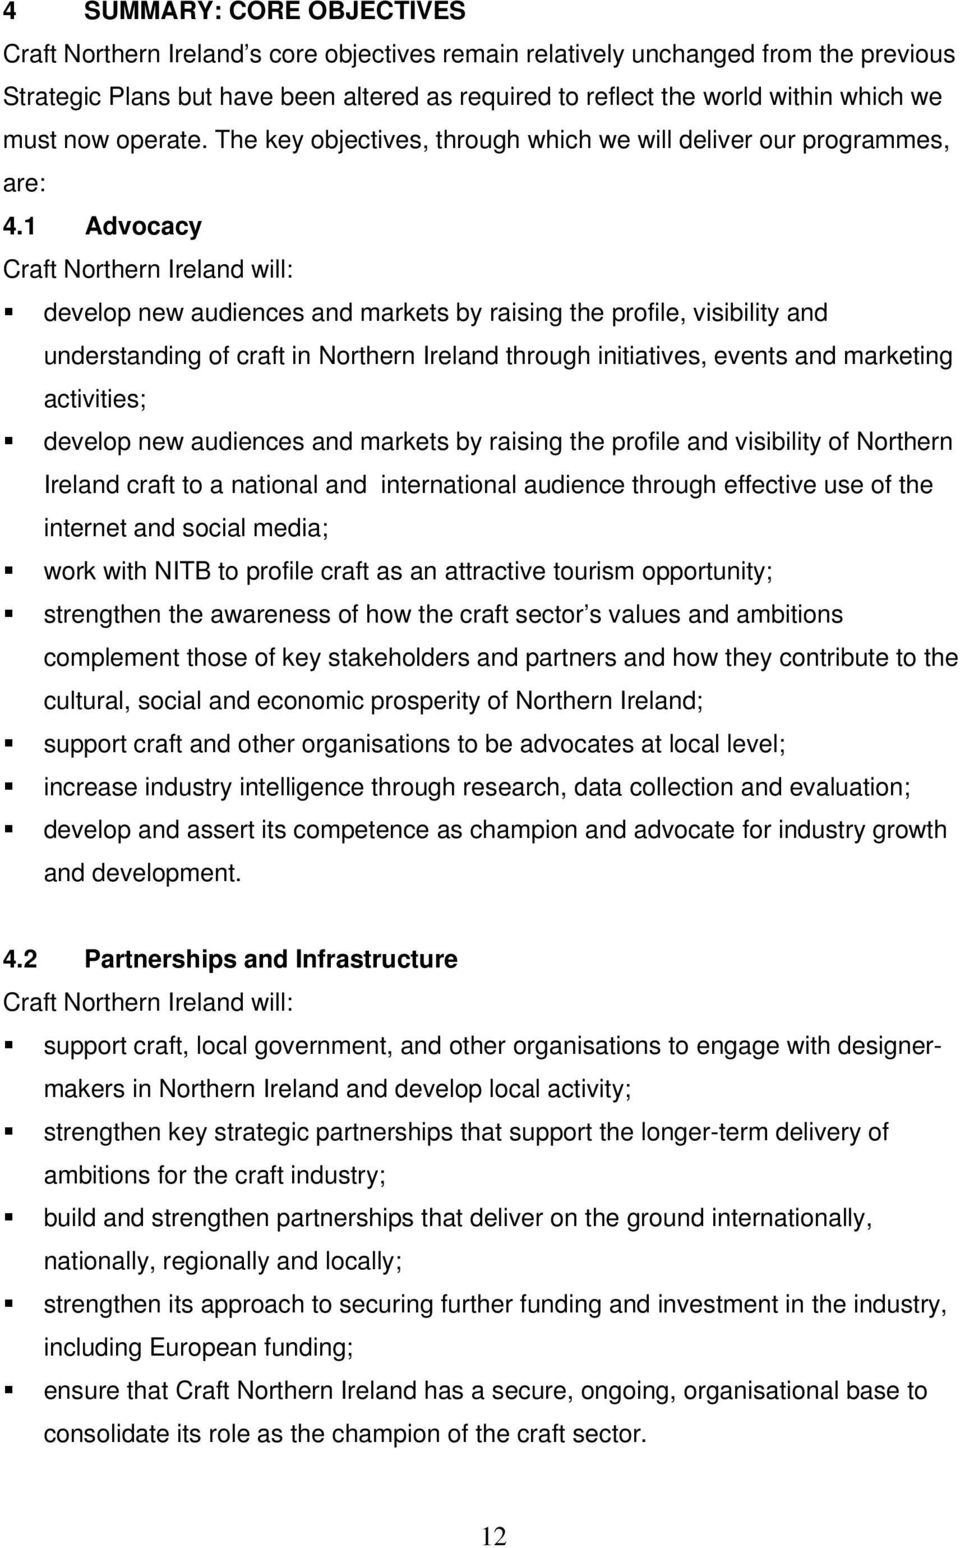 1 Advocacy Craft Northern Ireland will: develop new audiences and markets by raising the profile, visibility and understanding of craft in Northern Ireland through initiatives, events and marketing